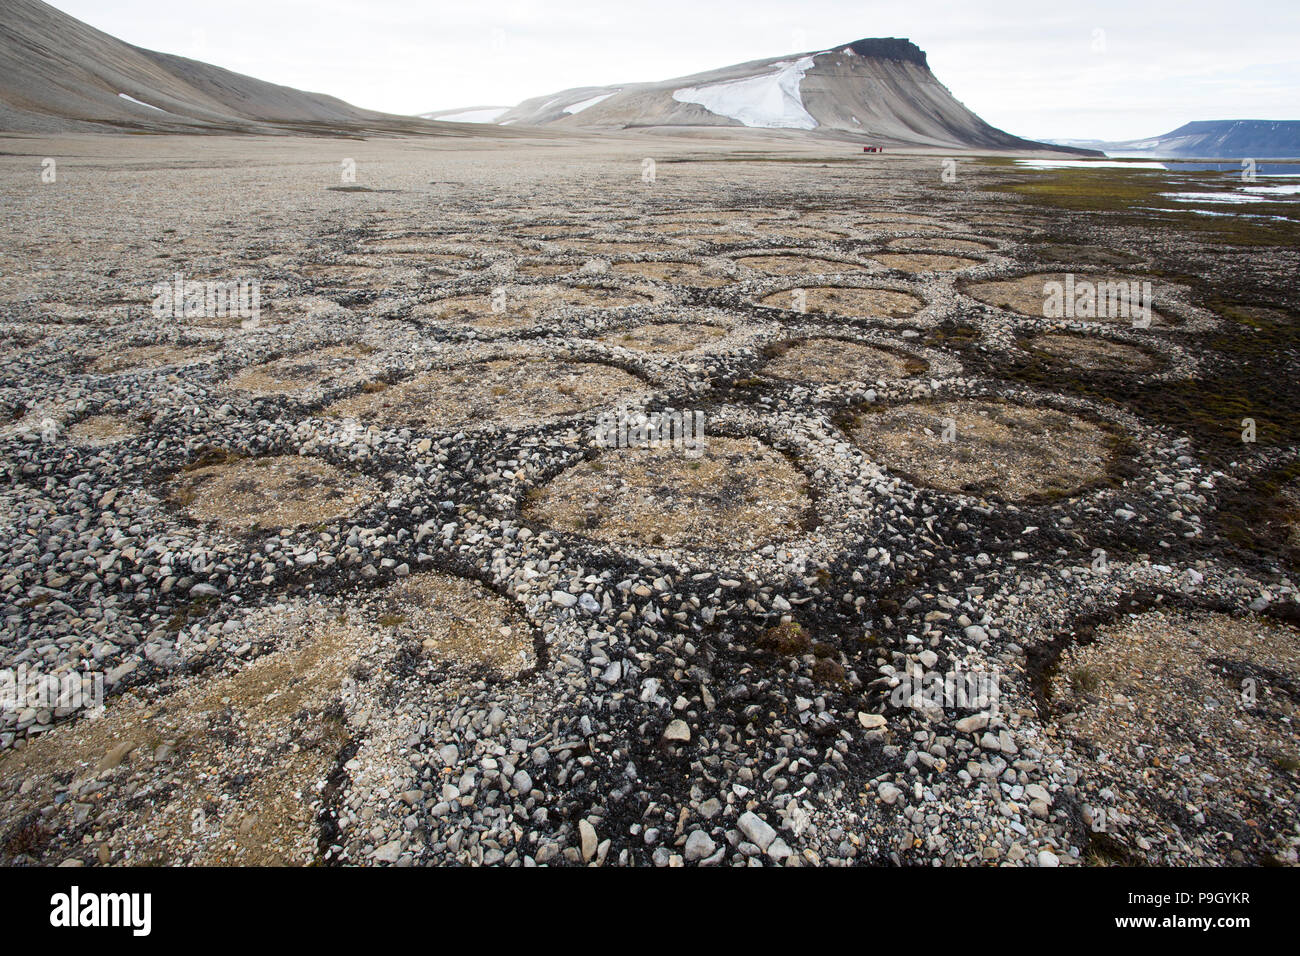 Natural Stone Circles Caused By Cryoturbation in a Polar Desert. Zeipelodden, Svalbard - Stock Image